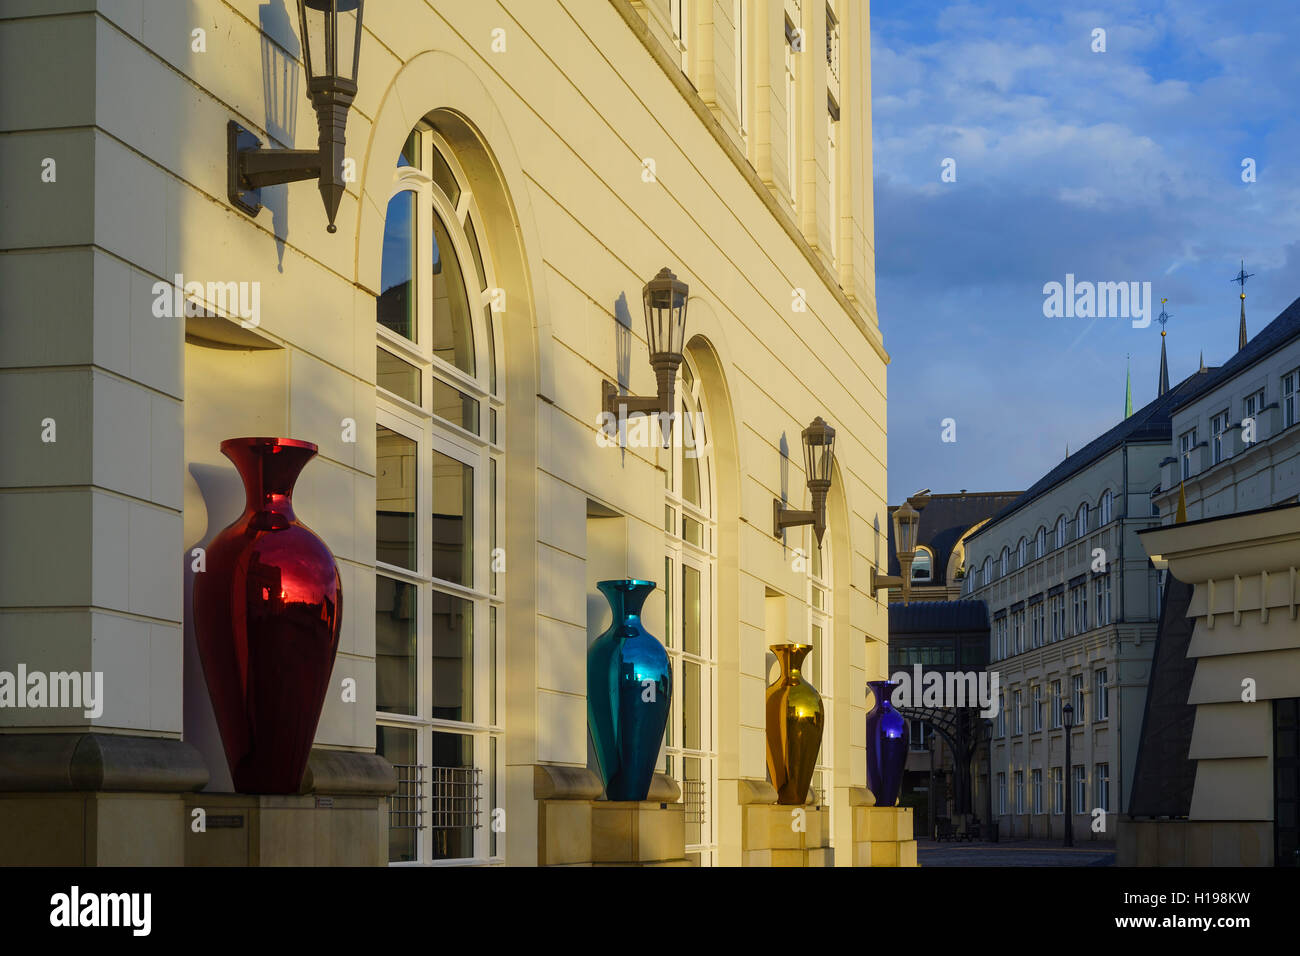 The beautiful plaza around Cite Judiciaire Luxembourg at sun rise - Stock Image